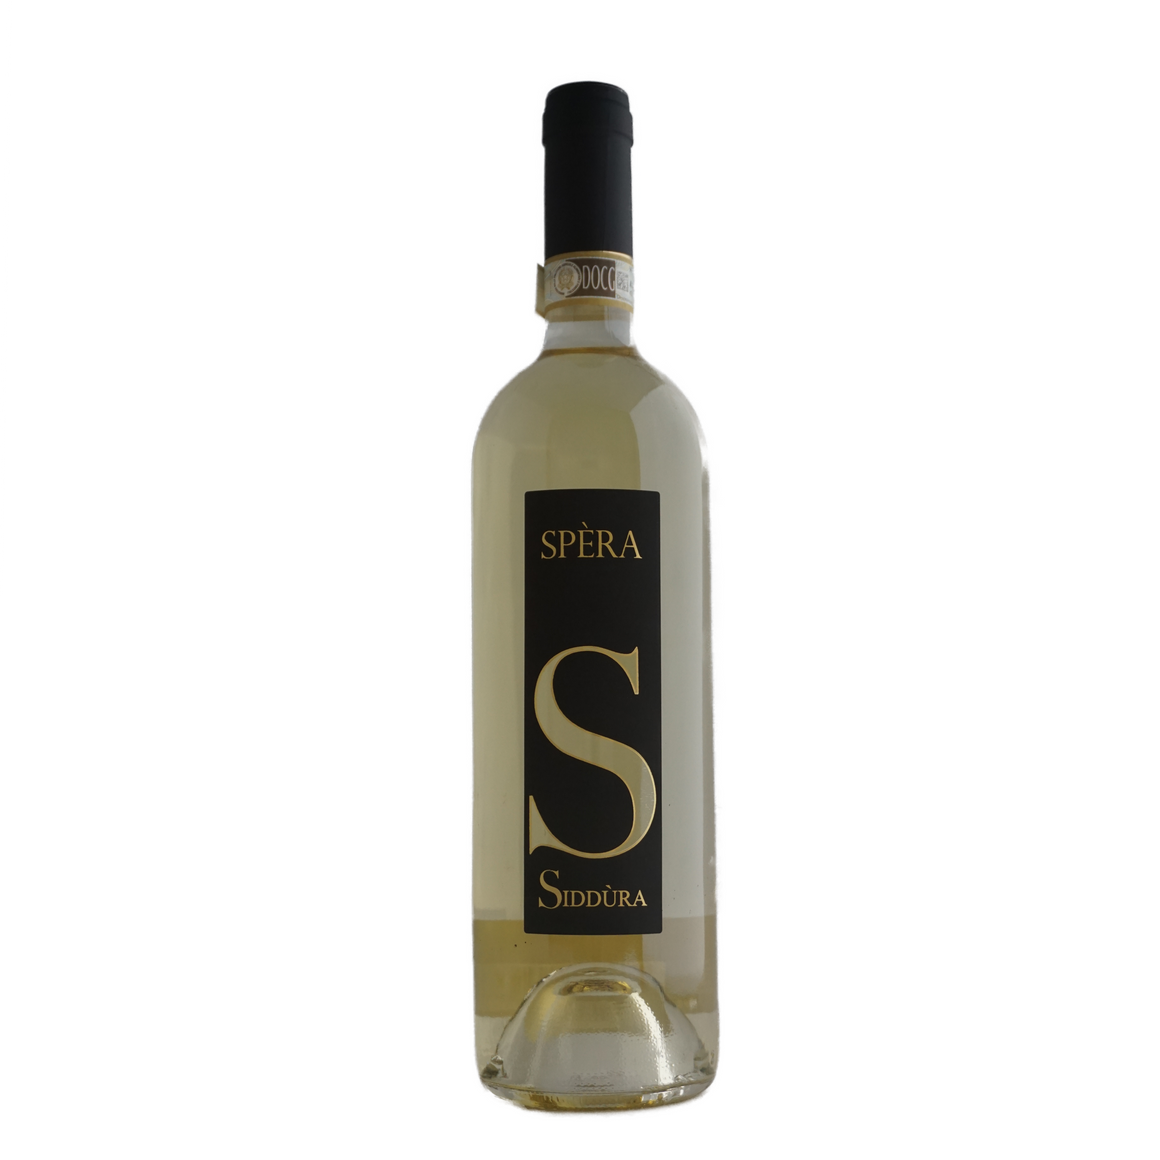 Vermentino Spera DOCG, Siddura 2015 - Secret Cellar